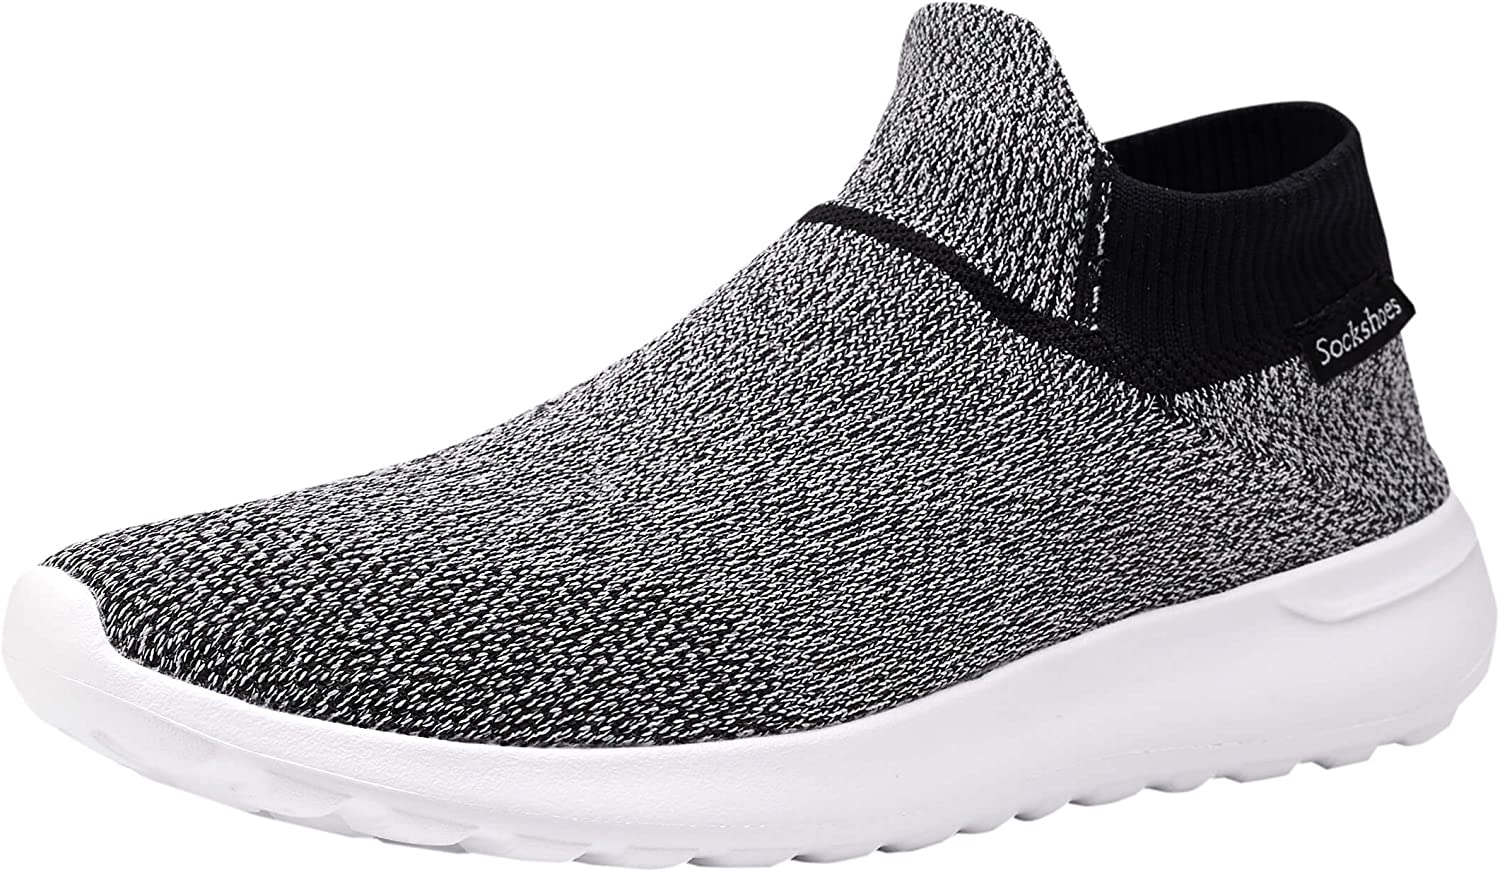 Phefee Mens Ultrasock shoes Fashion Casual Walking Sneakers for Lightweight and Super Soft Footwear(Black40)